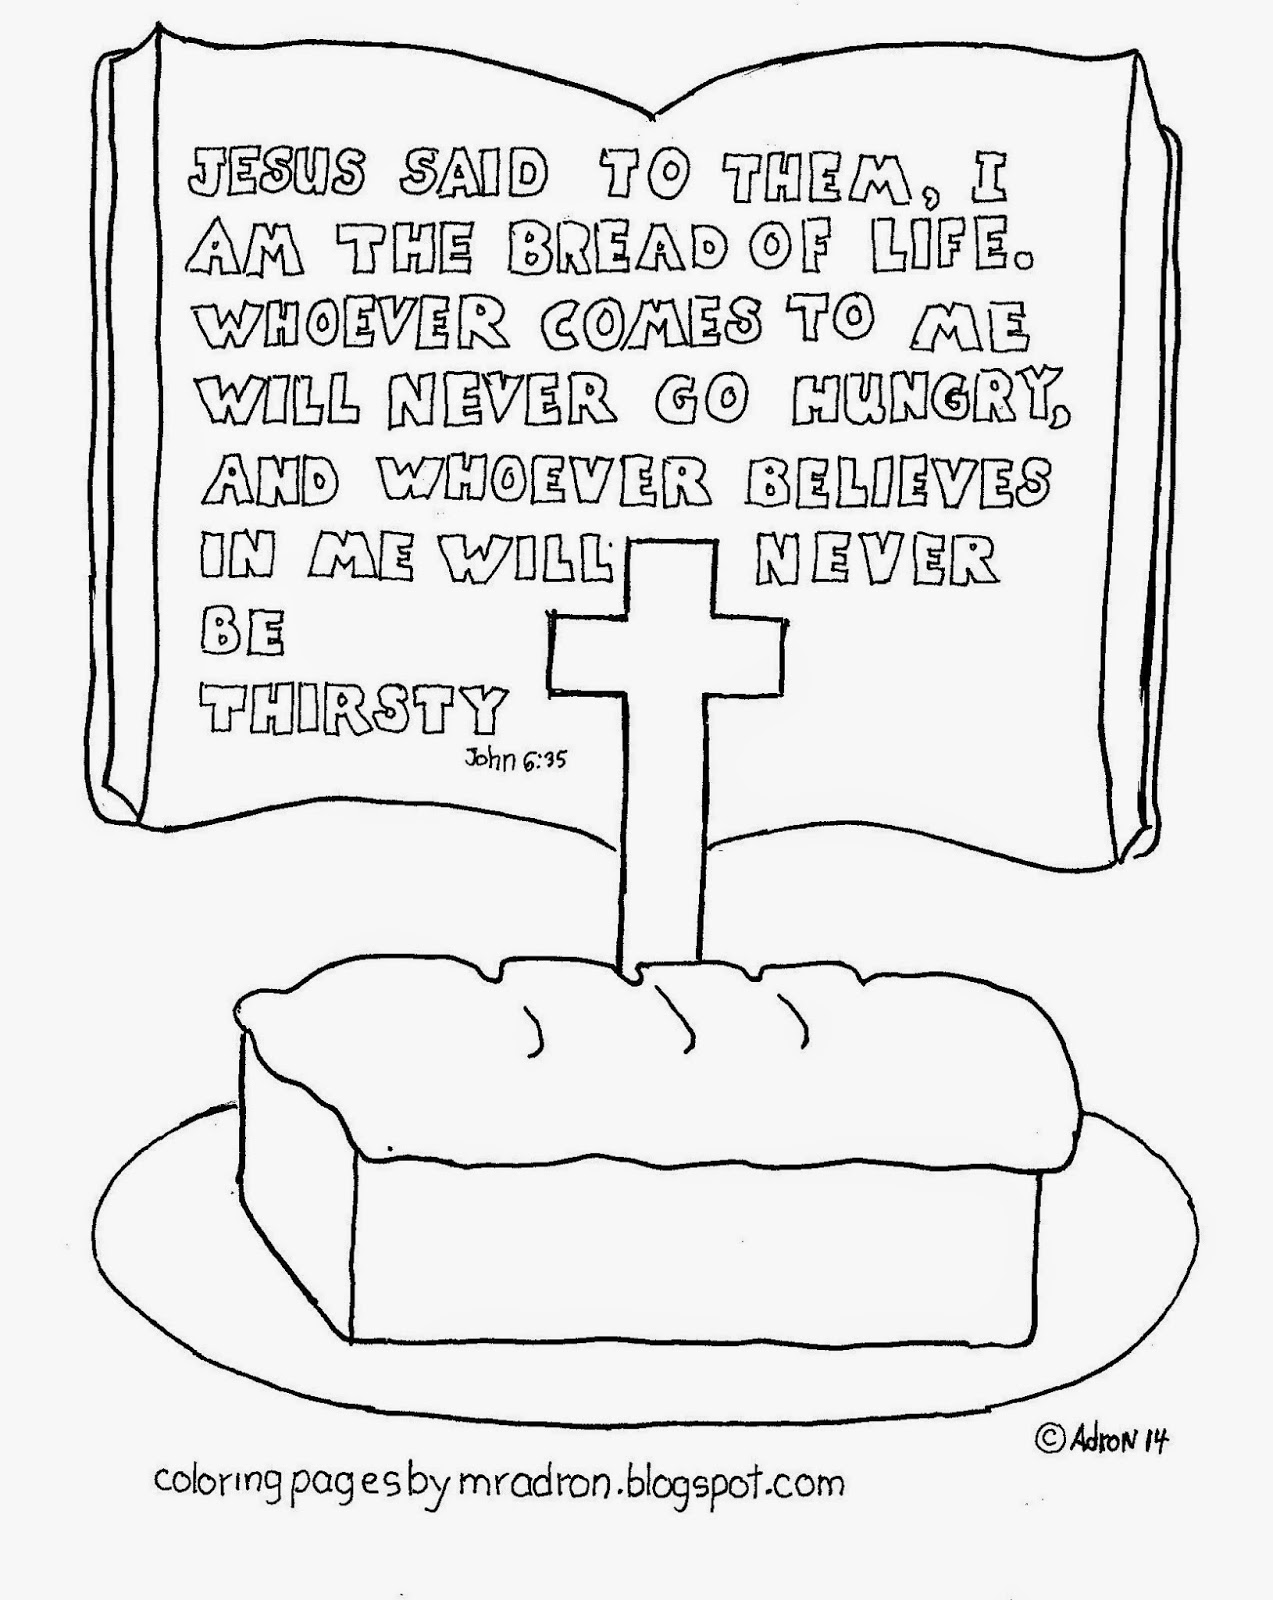 Jesus Bread of Life Coloring Page high resolution widescreen